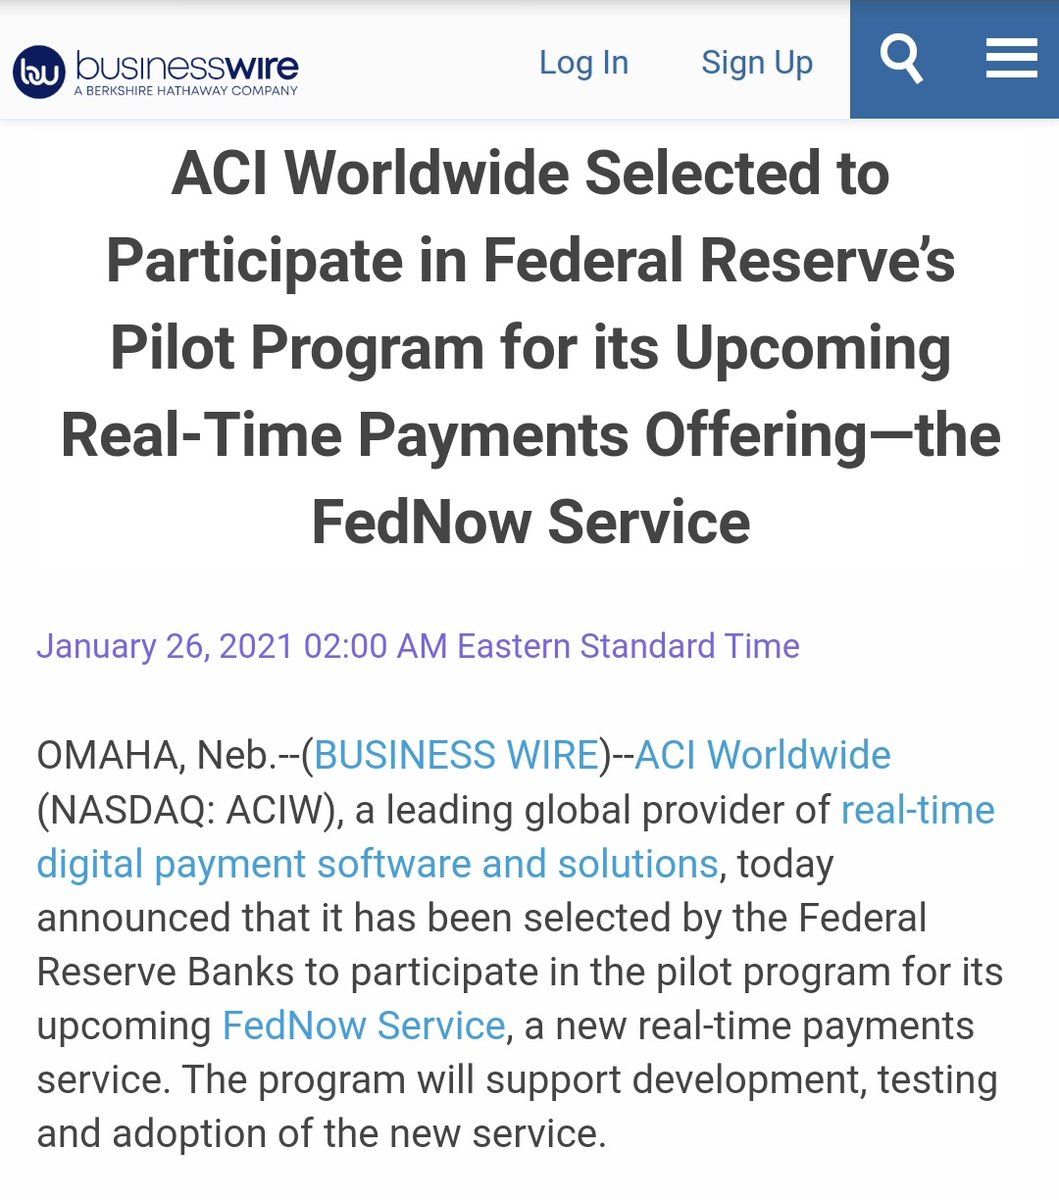 🔥 JUST IN: Ripple Supporter ACI Worldwide Selected to Participate in Federal Reserve's Pilot Program for its Upcoming Real-Time Payments Offering—the FedNow Service businesswire.com/news/home/2021… #XRP #XRPCommunity #crypto #blockchain